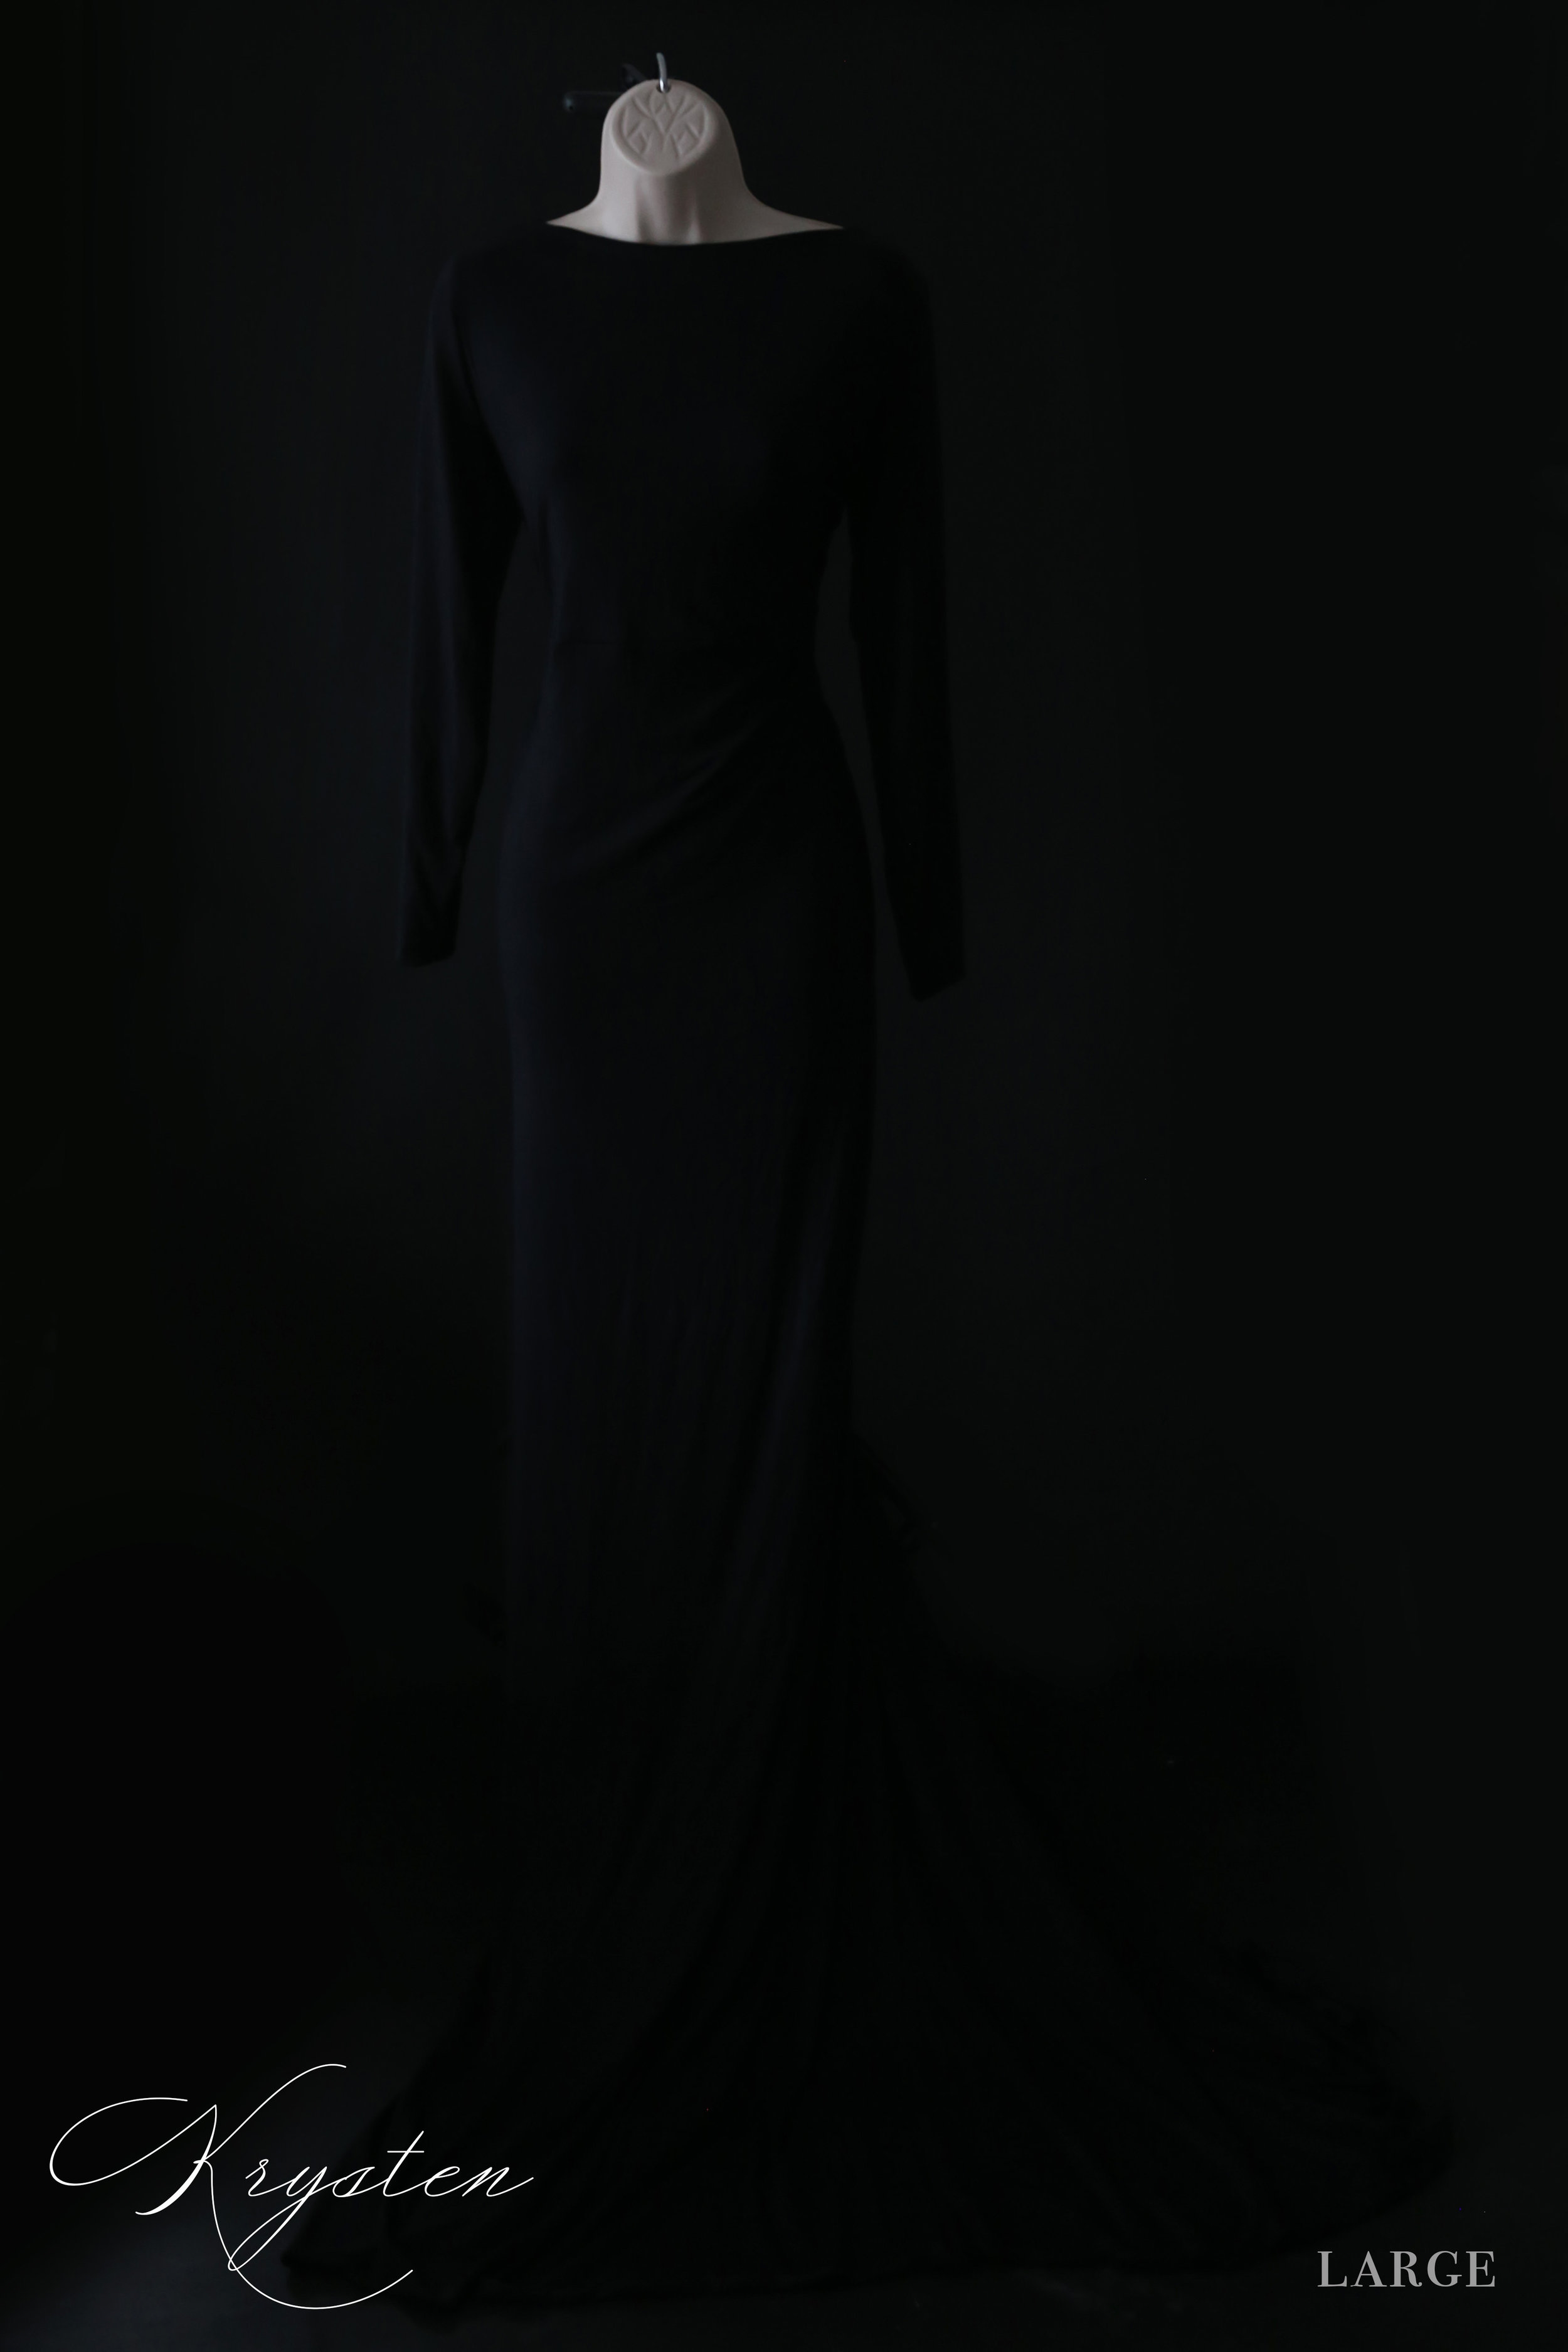 Krysten - Large Elegant, glamourous, and classic. This dress could look beautiful in an urban location, in a field of rich greens, against a white winter scene, or very magazine Vogue-esque in studio.